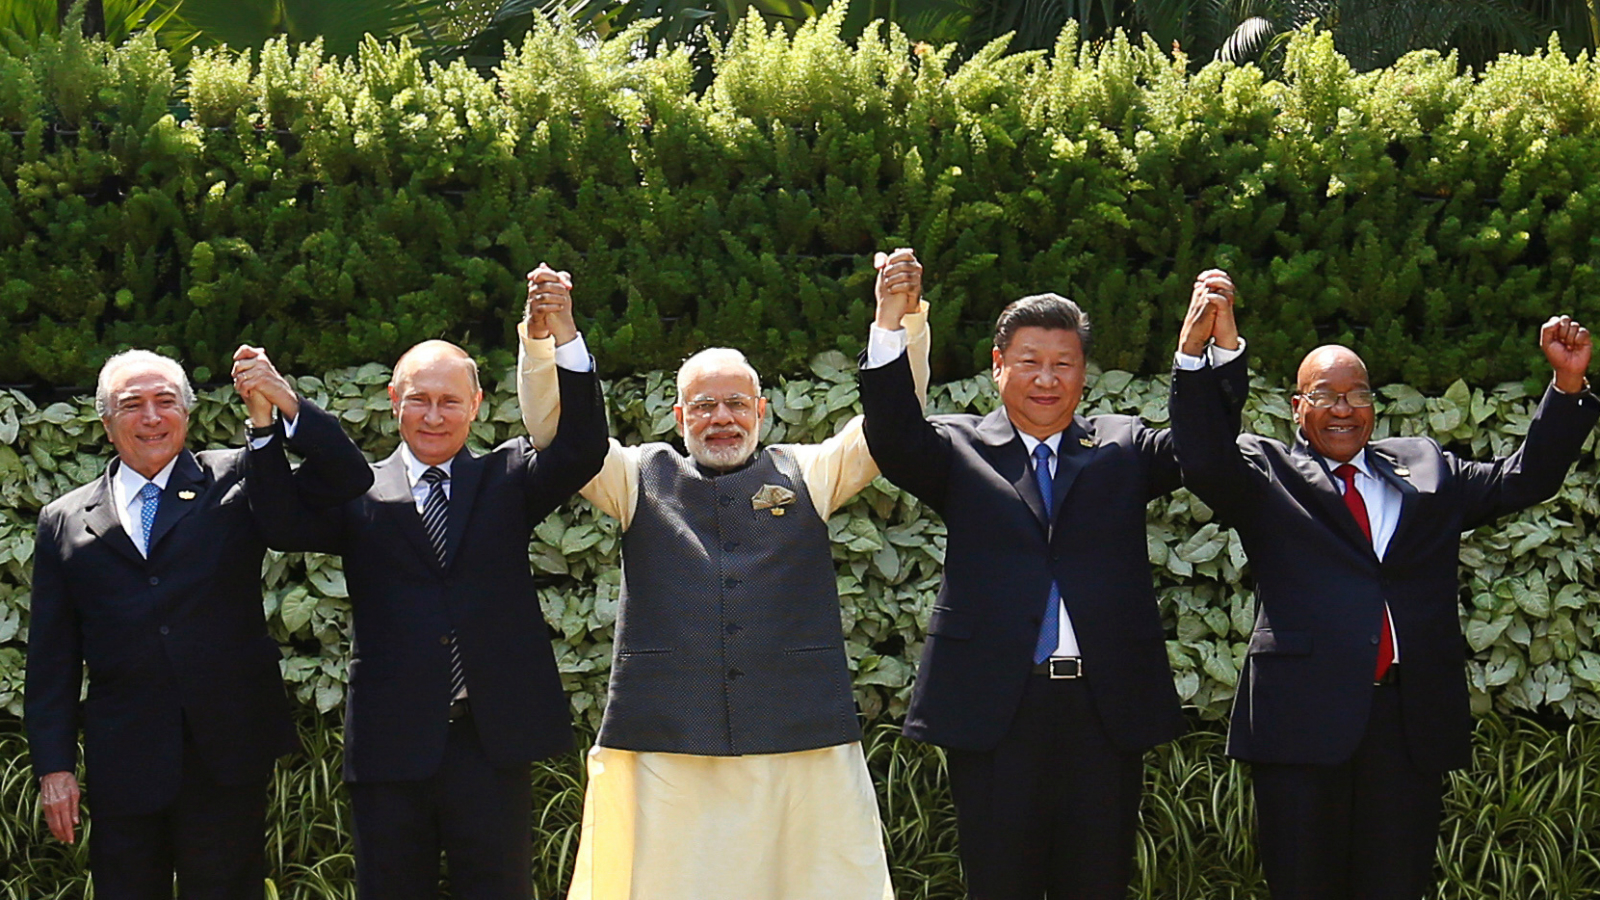 Brazil's President Michel Temer, Russian President Vladimir Putin, Indian Prime Minister Narendra Modi, Chinese President Xi Jinping and South African President Jacob Zuma pose for a group picture during BRICS (Brazil, Russia, India, China and South Africa) Summit in Benaulim, in the western state of Goa, India, October 16, 2016.